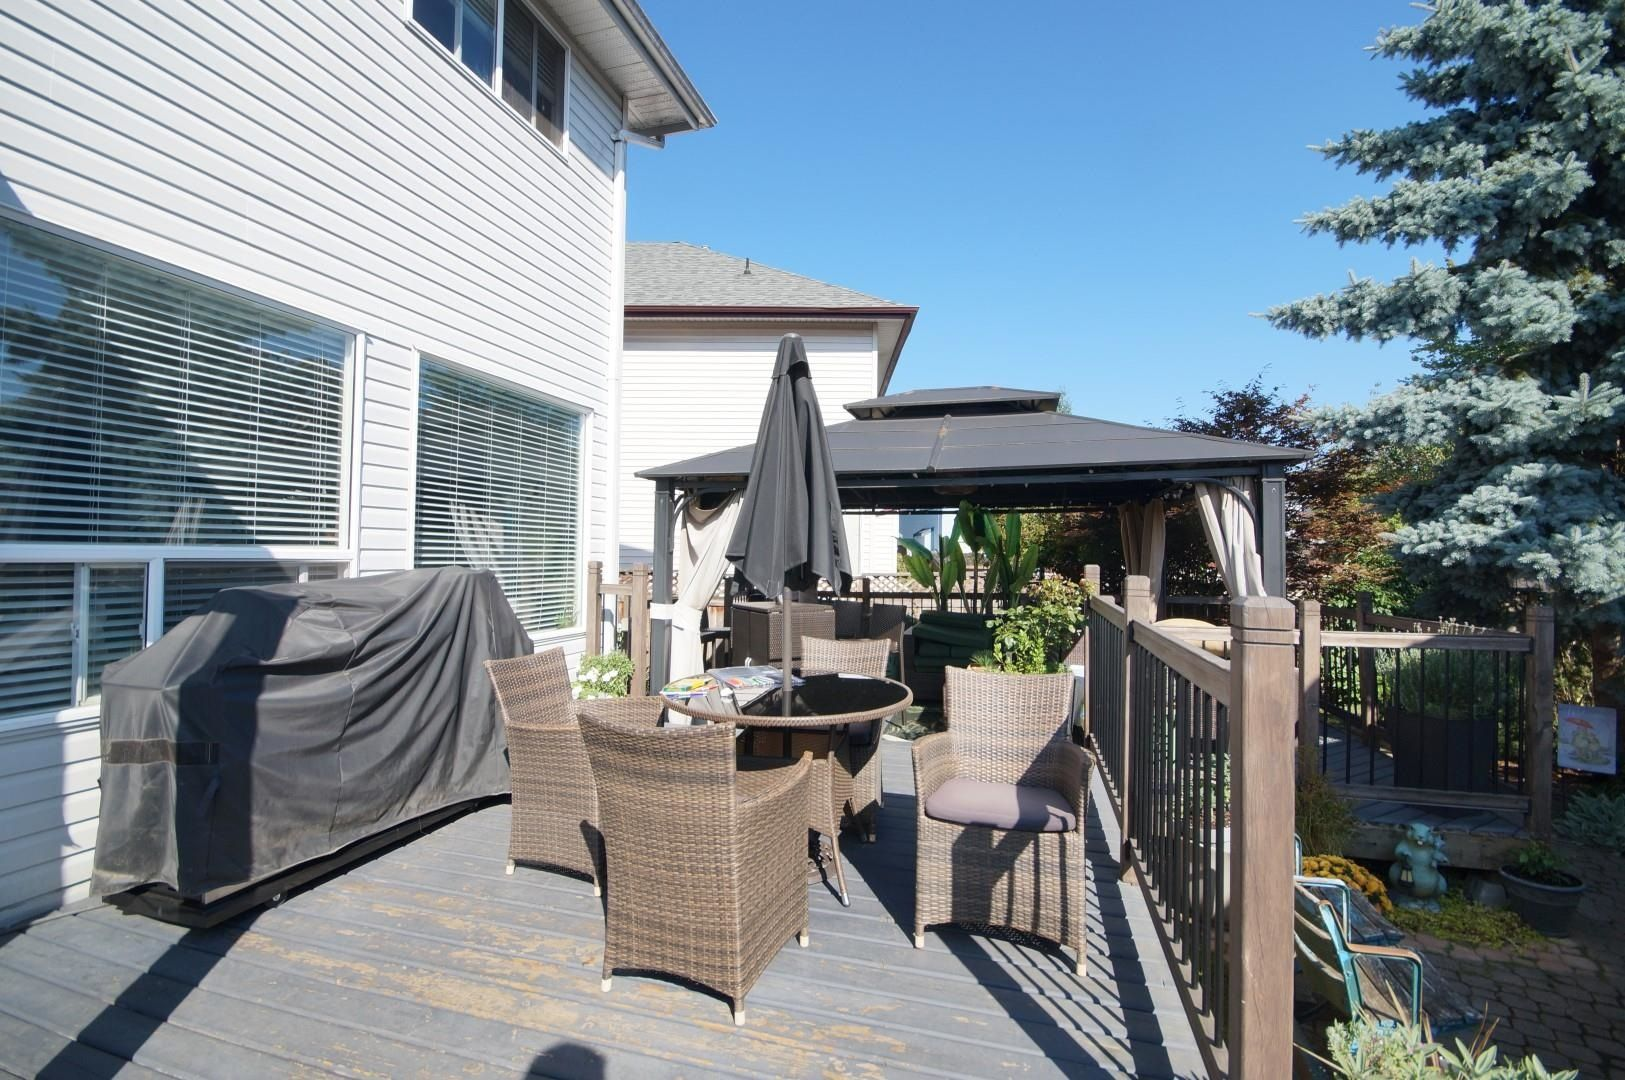 Photo 22: Photos: 6464 185 STREET in Surrey: Cloverdale BC House for sale (Cloverdale)  : MLS®# R2613589